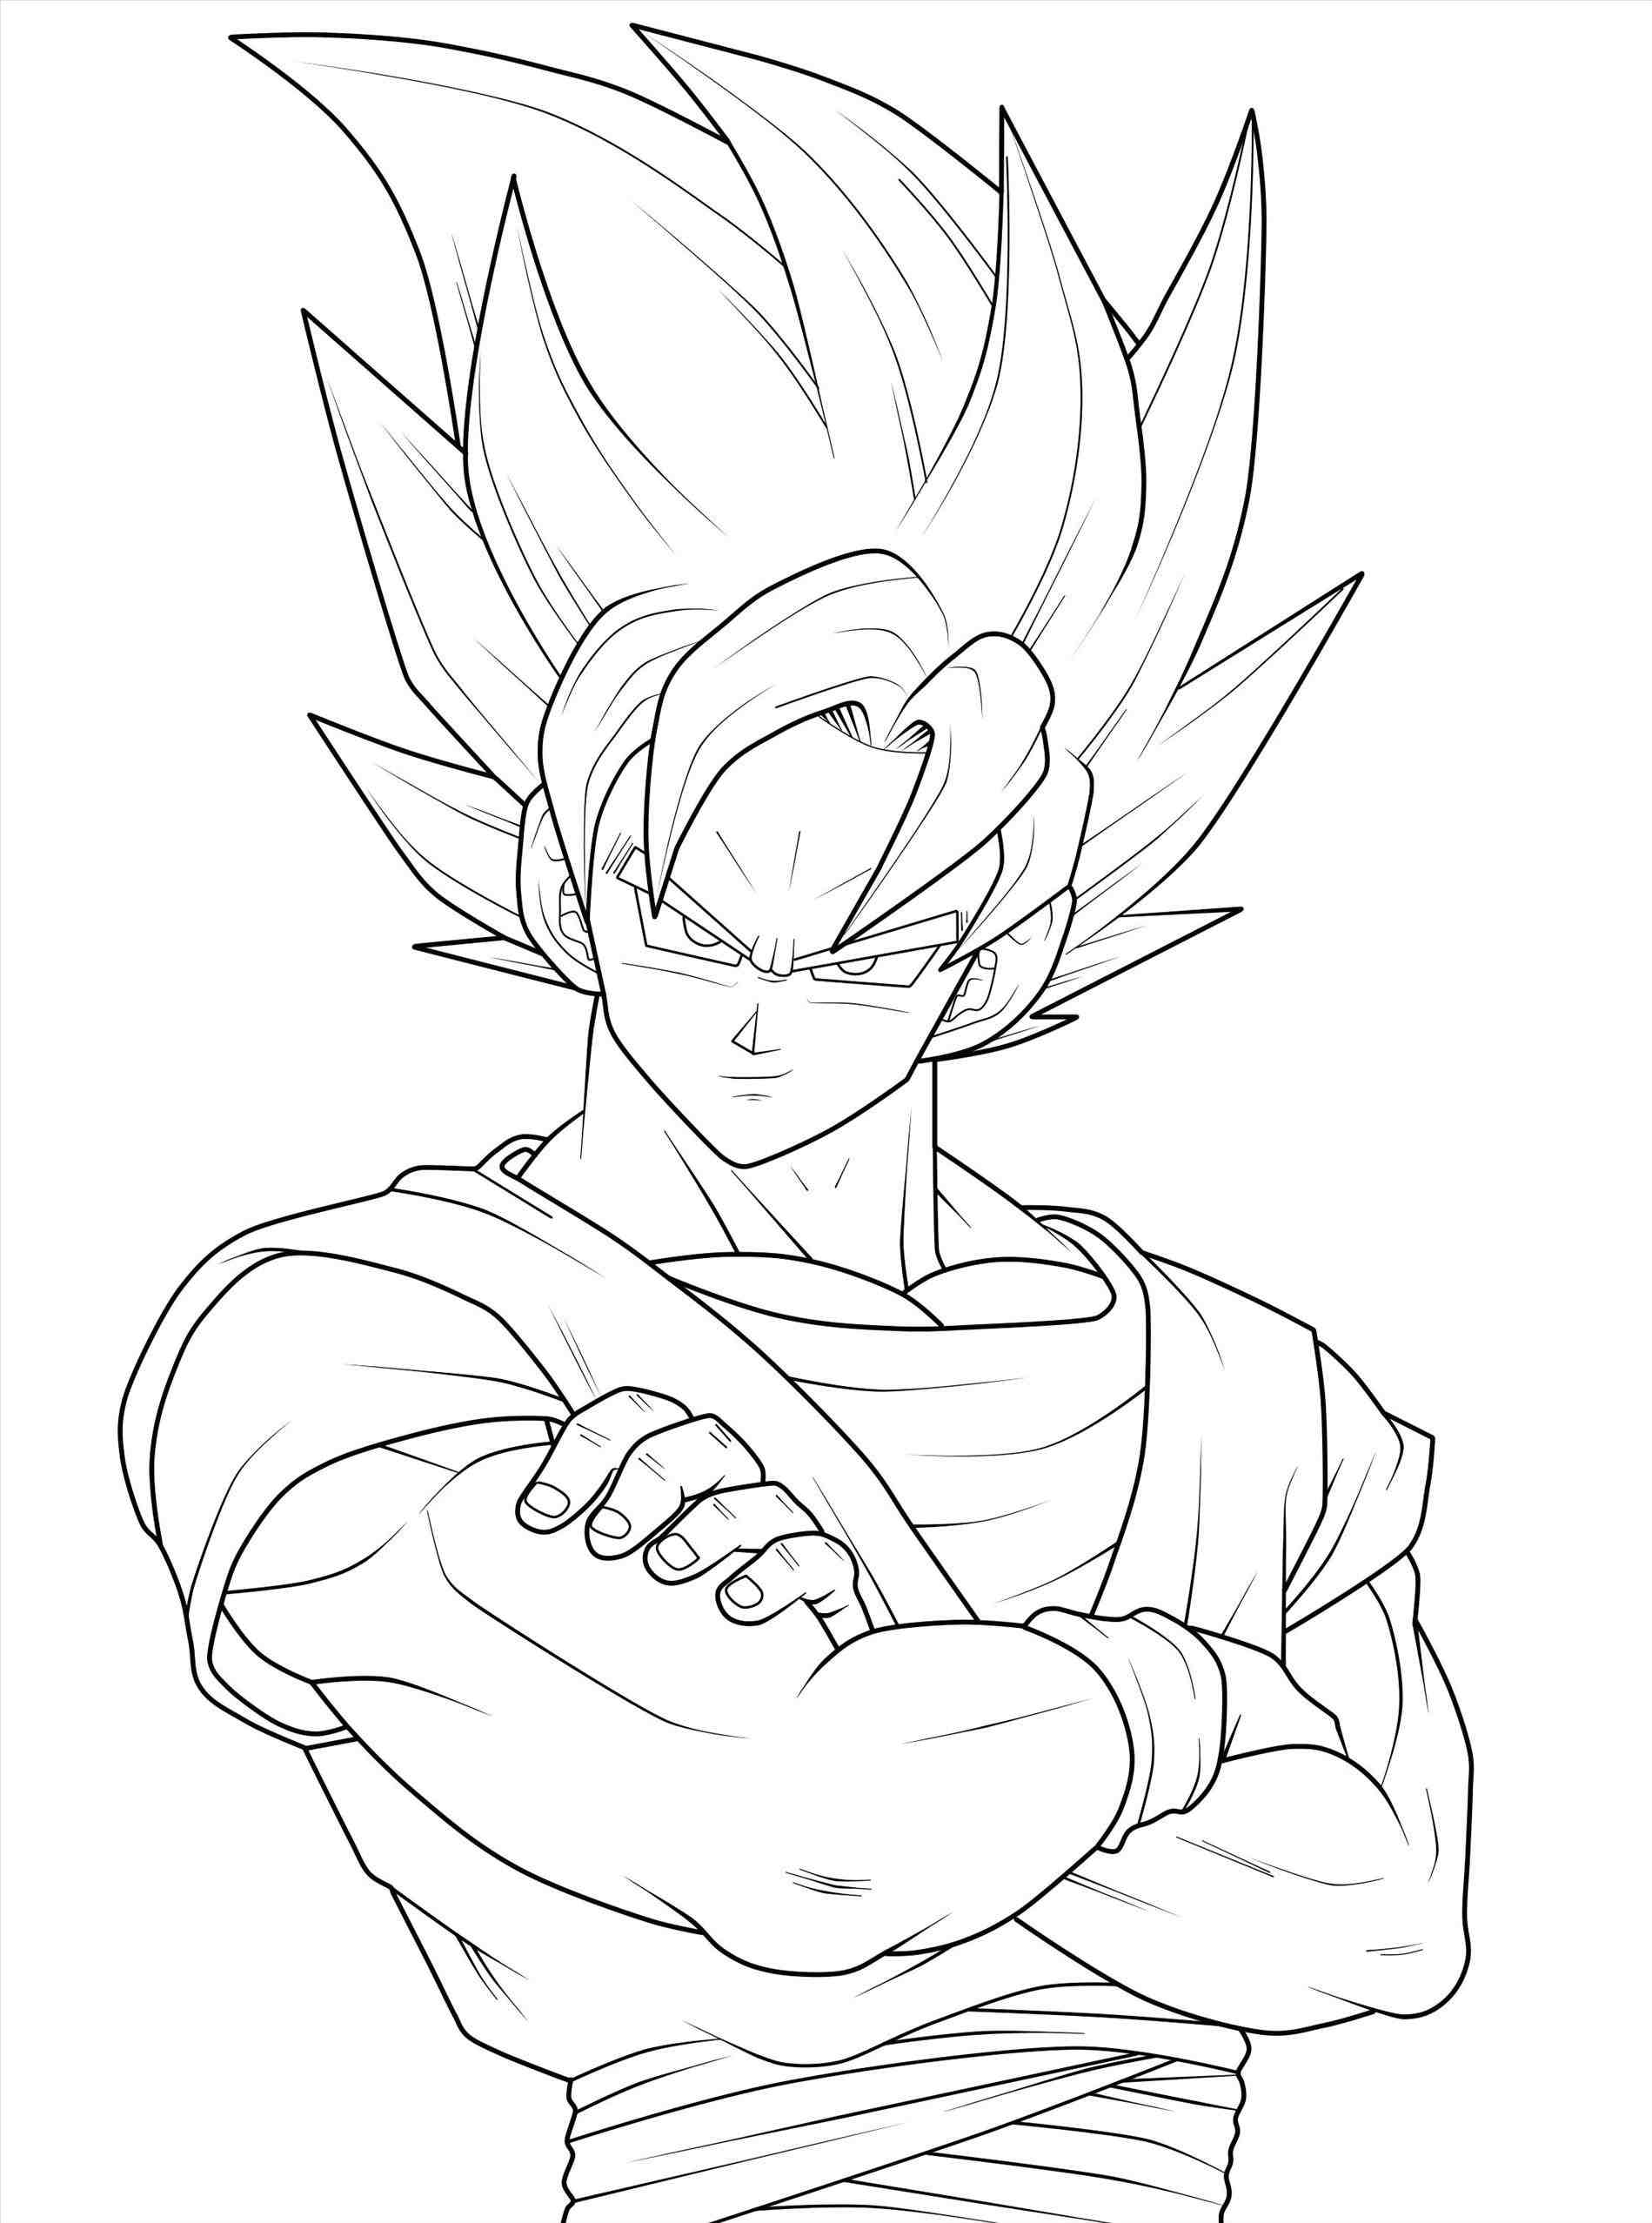 Dragon Ball Z Trunks Coloring Pages At Getdrawings Free Download